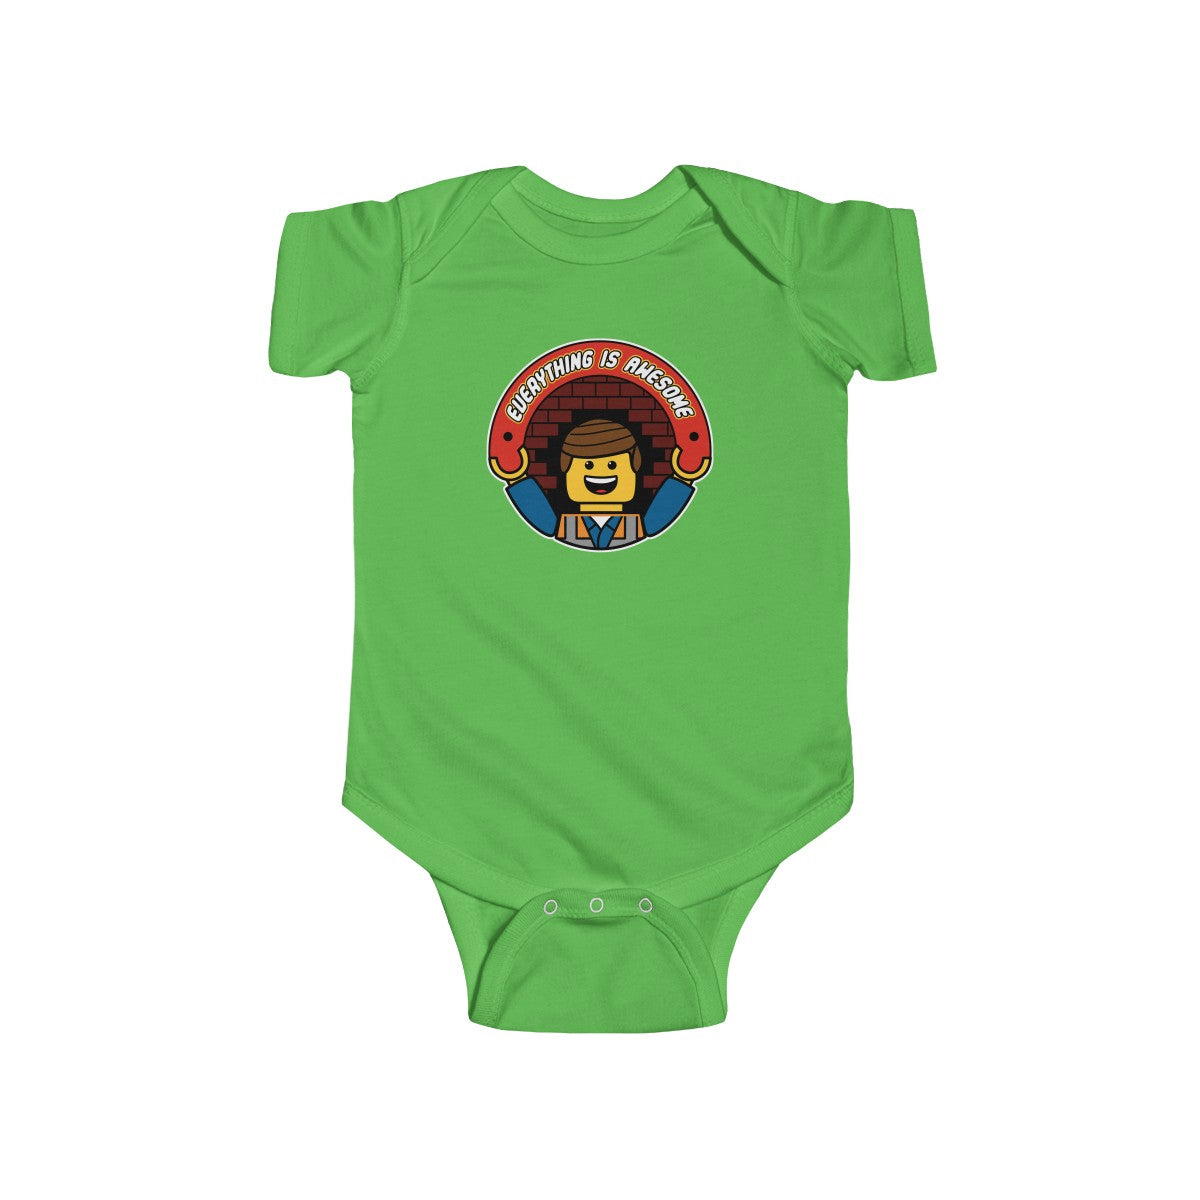 261c8ecddaee Everything is Awesome Baby Onesie